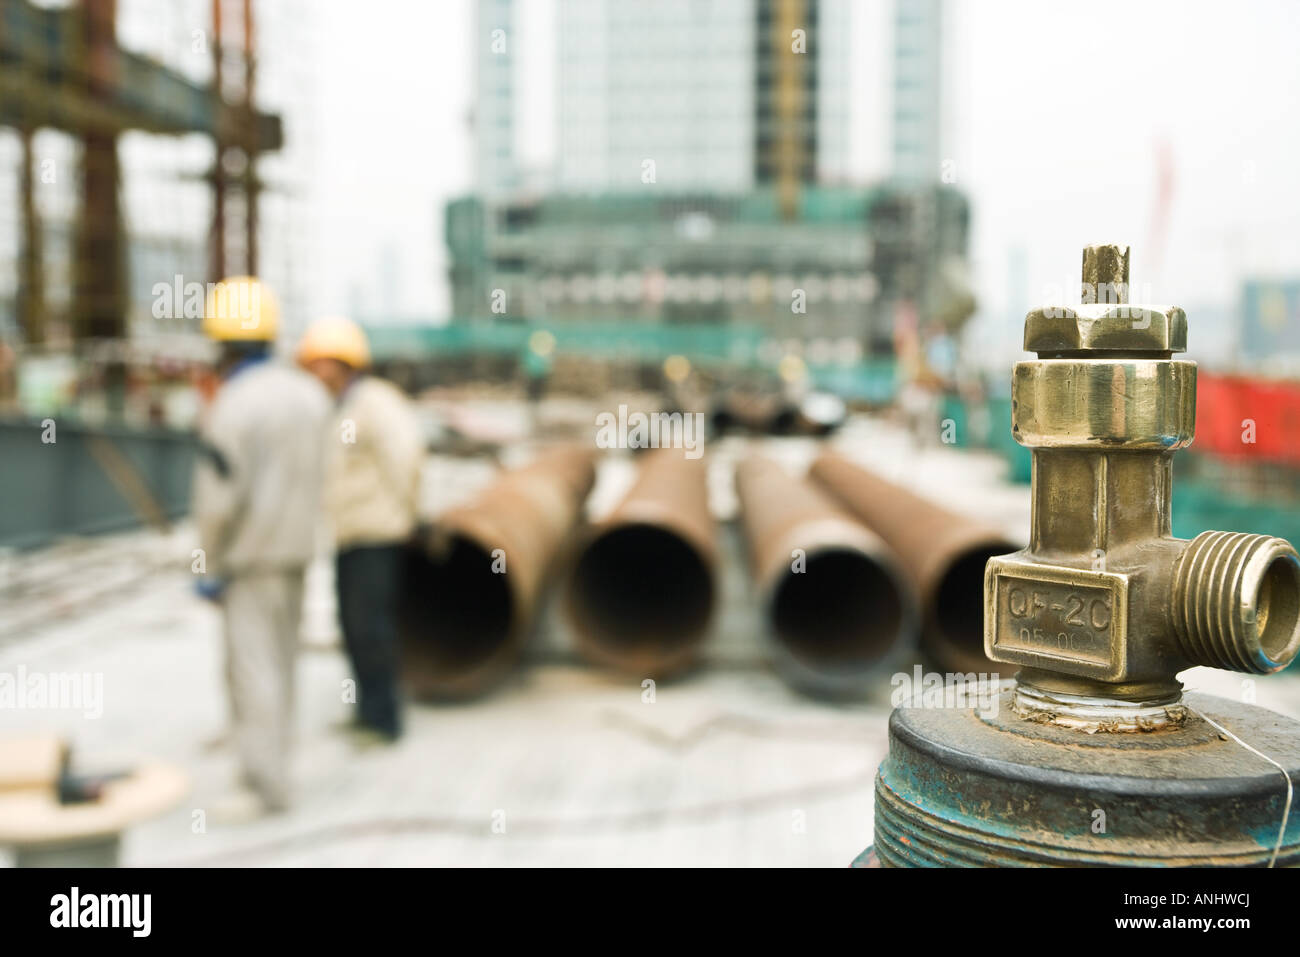 Construction site, focus on spigot in foreground - Stock Image